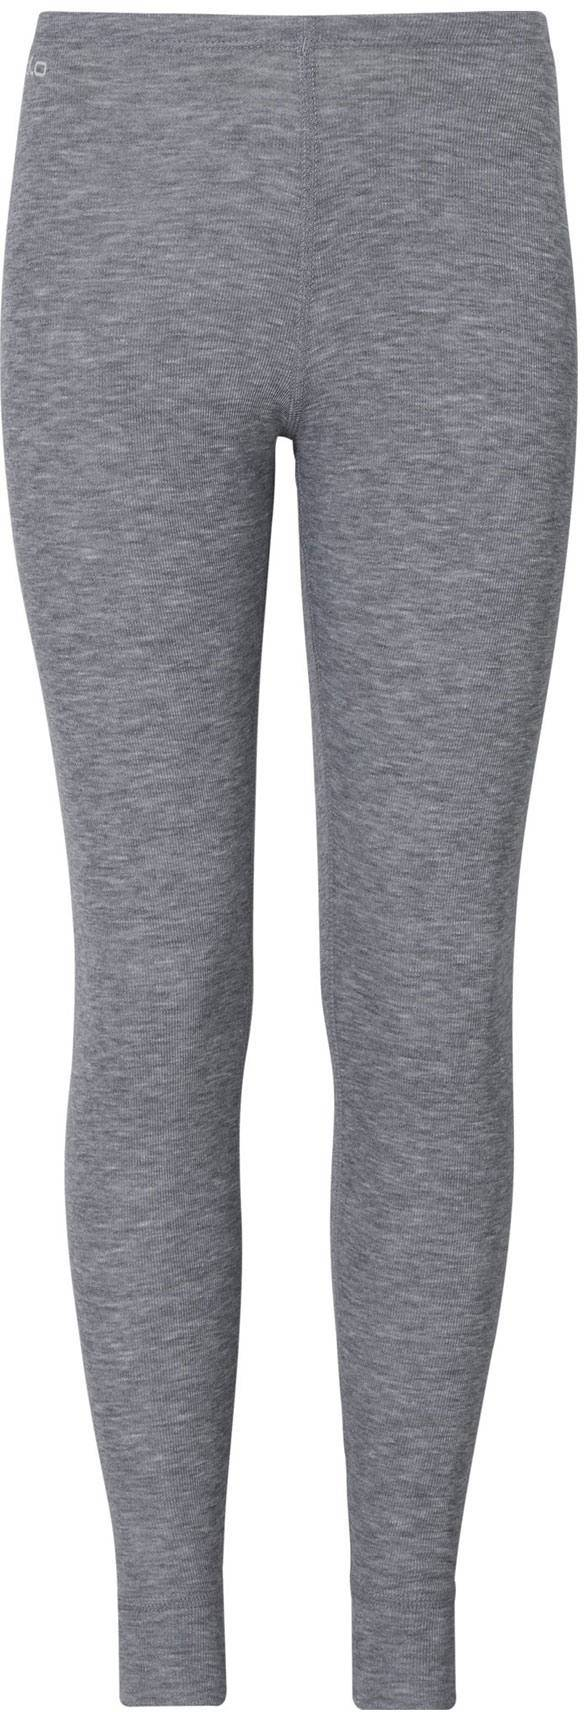 Odlo Kids Warm Pants harmaa 140